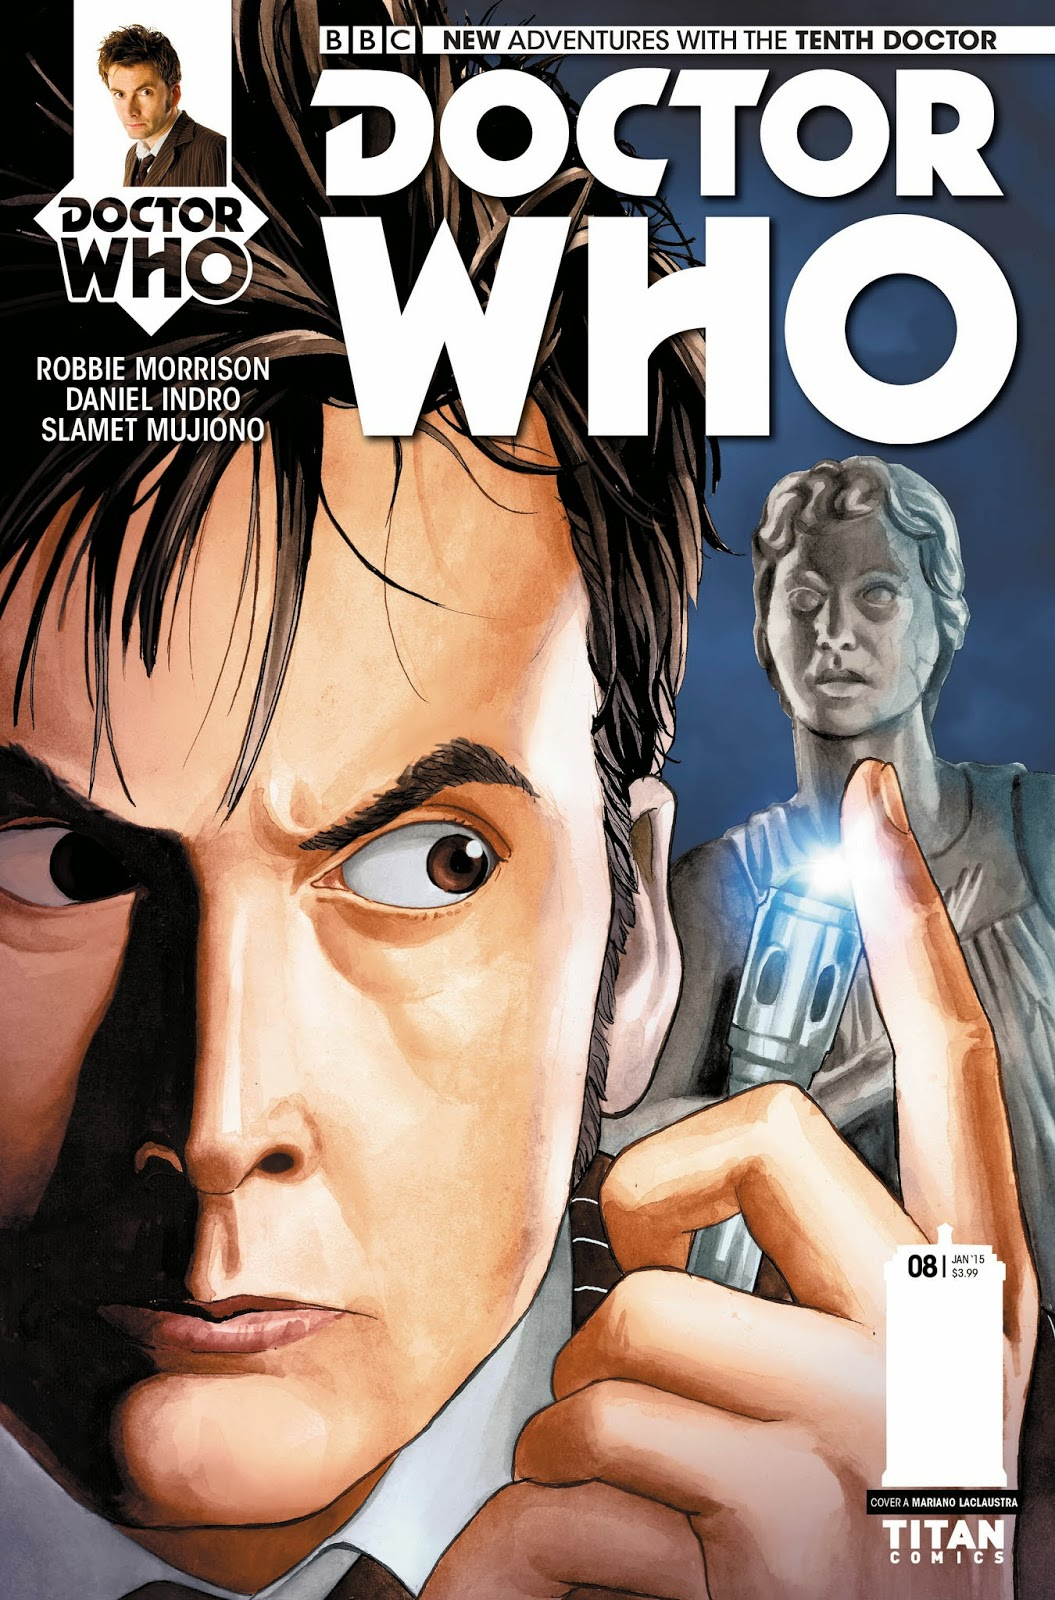 Doctor Who: Tenth Doctor #8